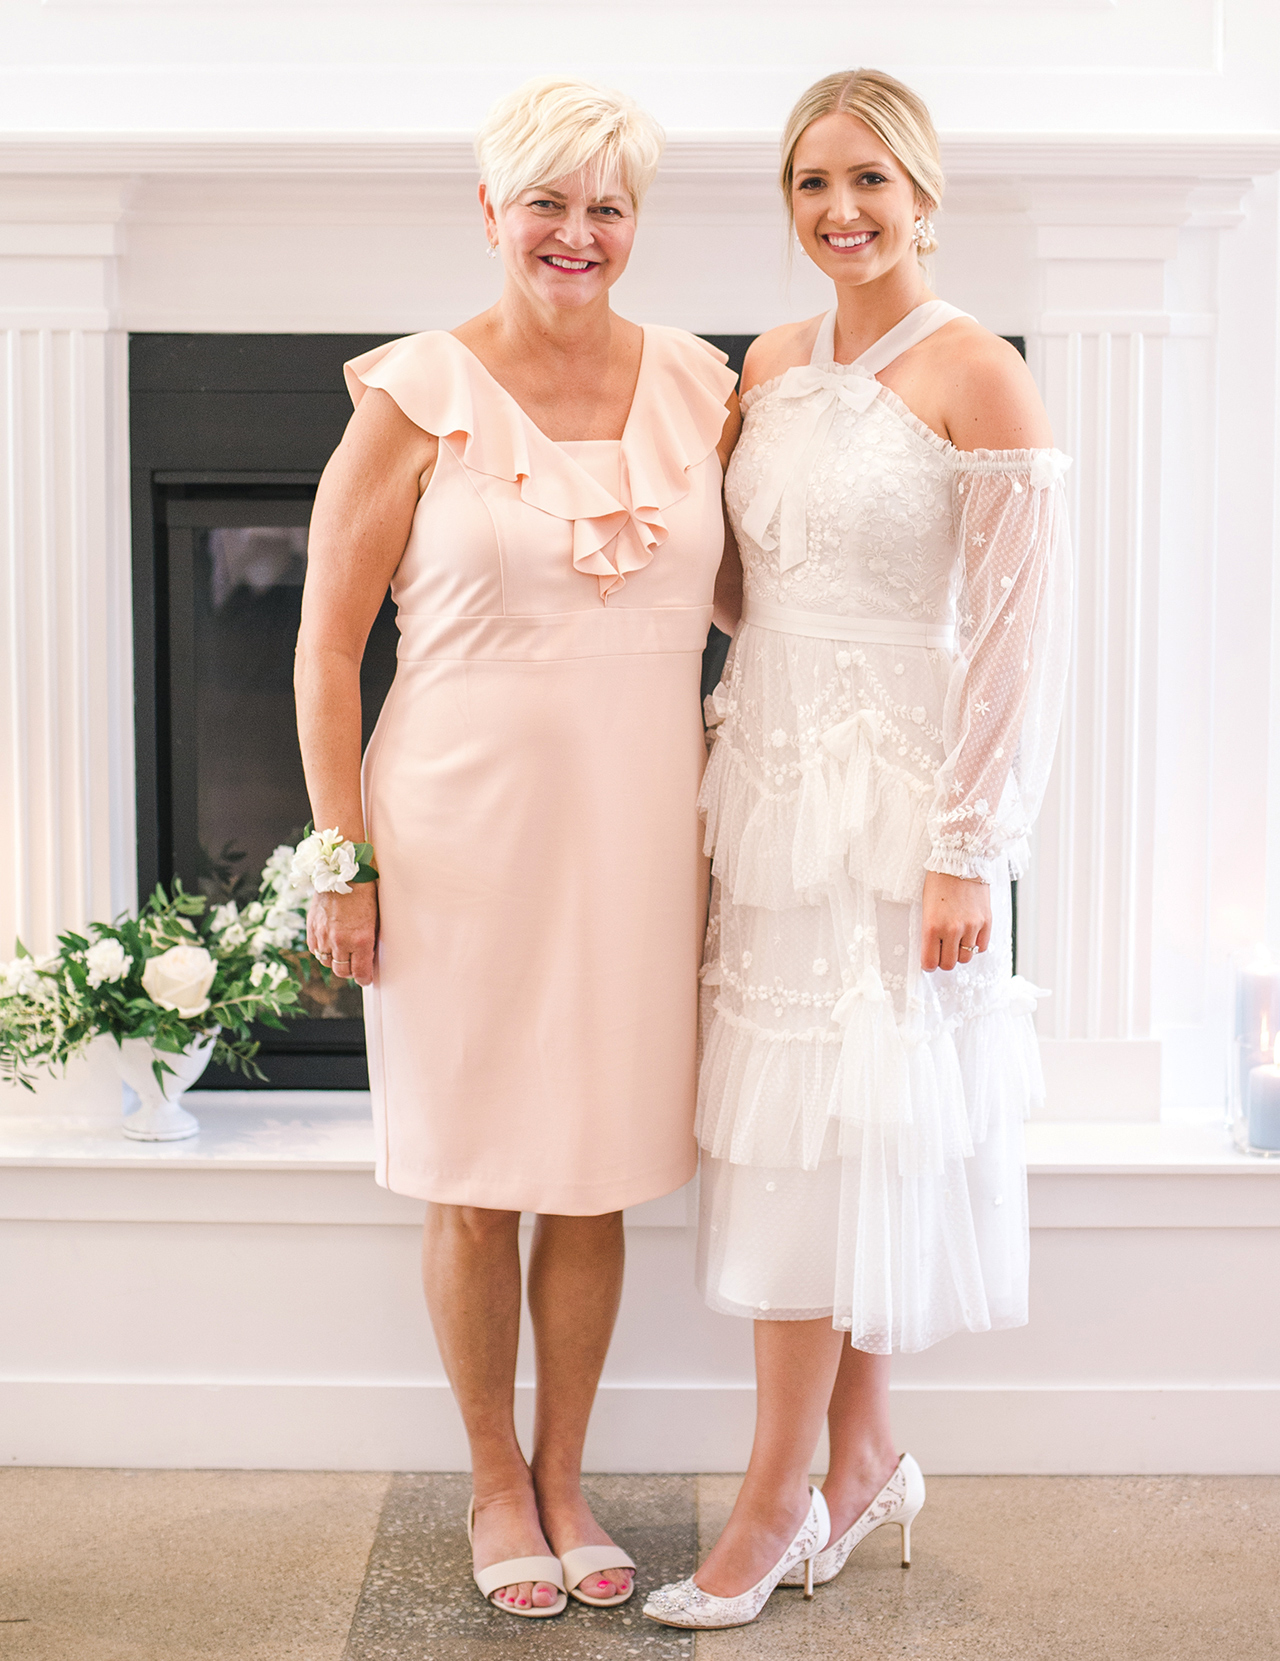 bride poses with mother in dresses bridal shower